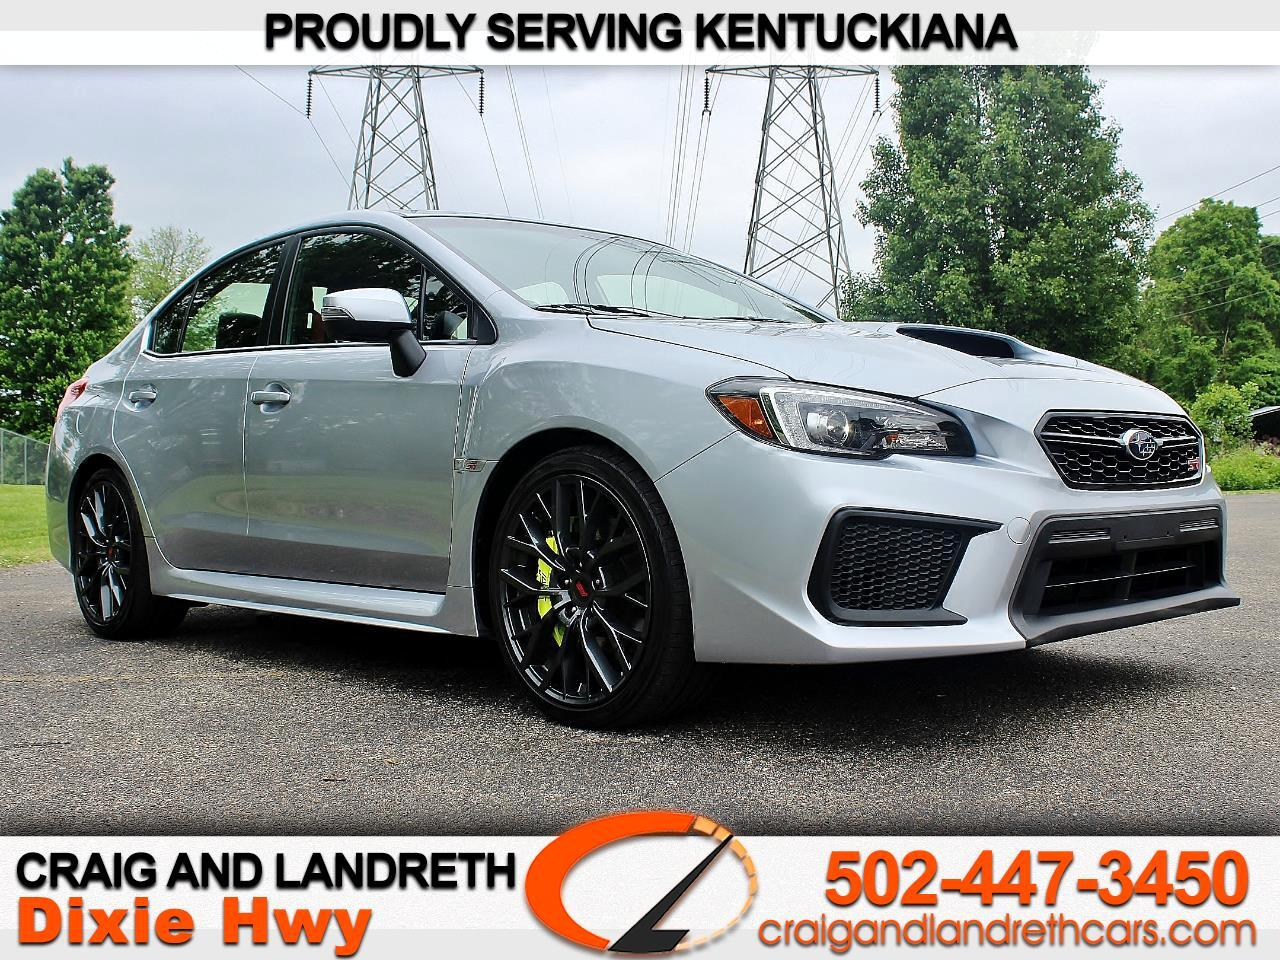 Craig And Landreth Cars >> Used Cars For Sale Louisville Ky 40216 Craig And Landreth Cars